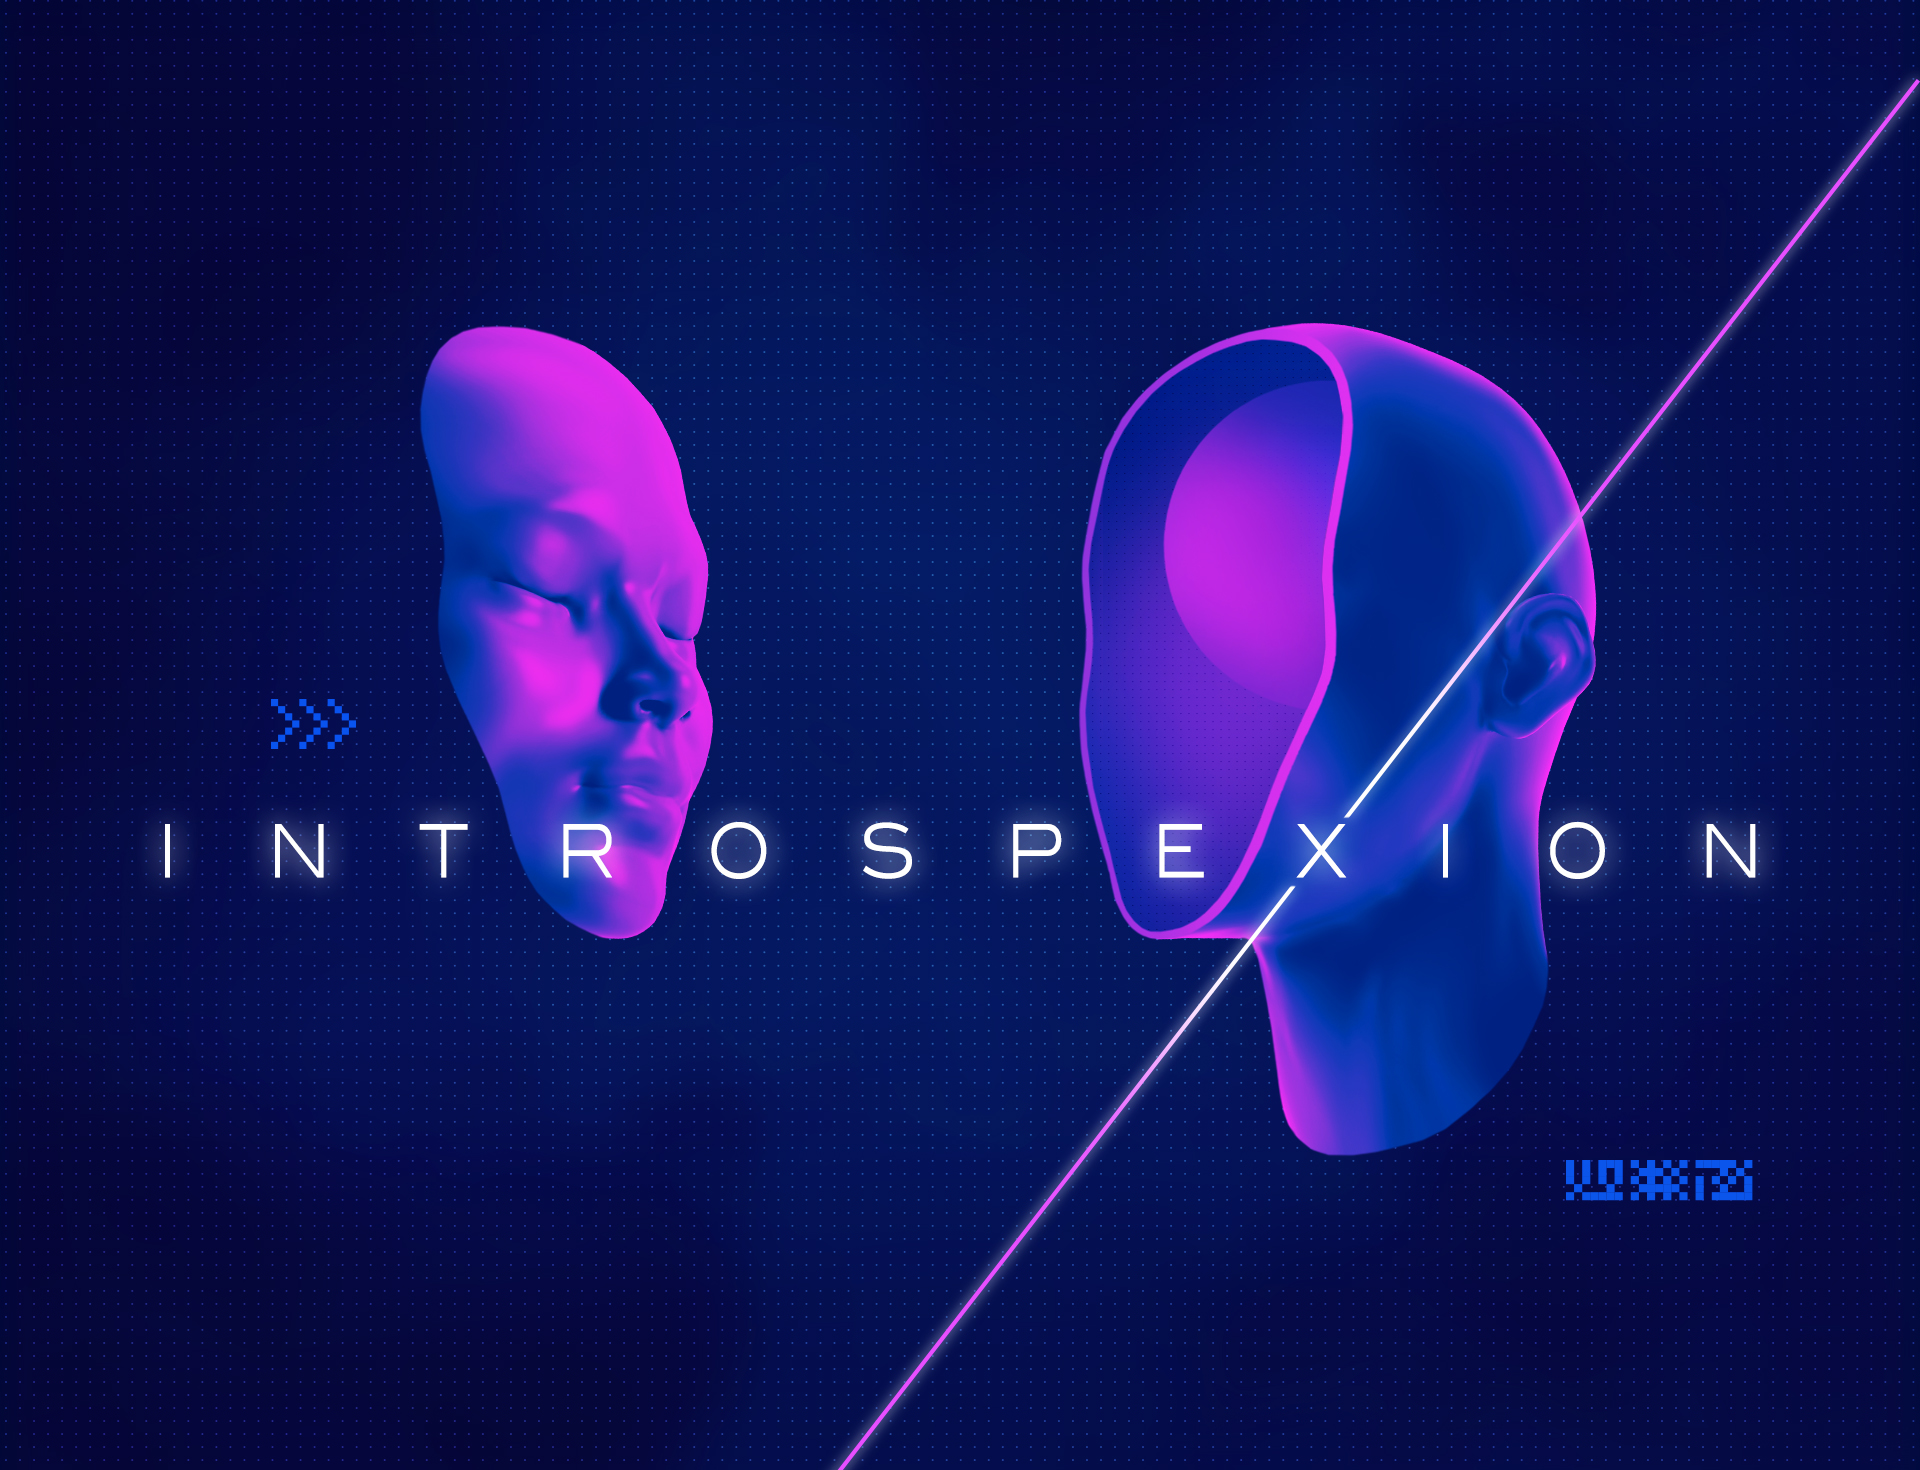 visual-introspexion-website-gate22-digital-art-expo-virtual-reality